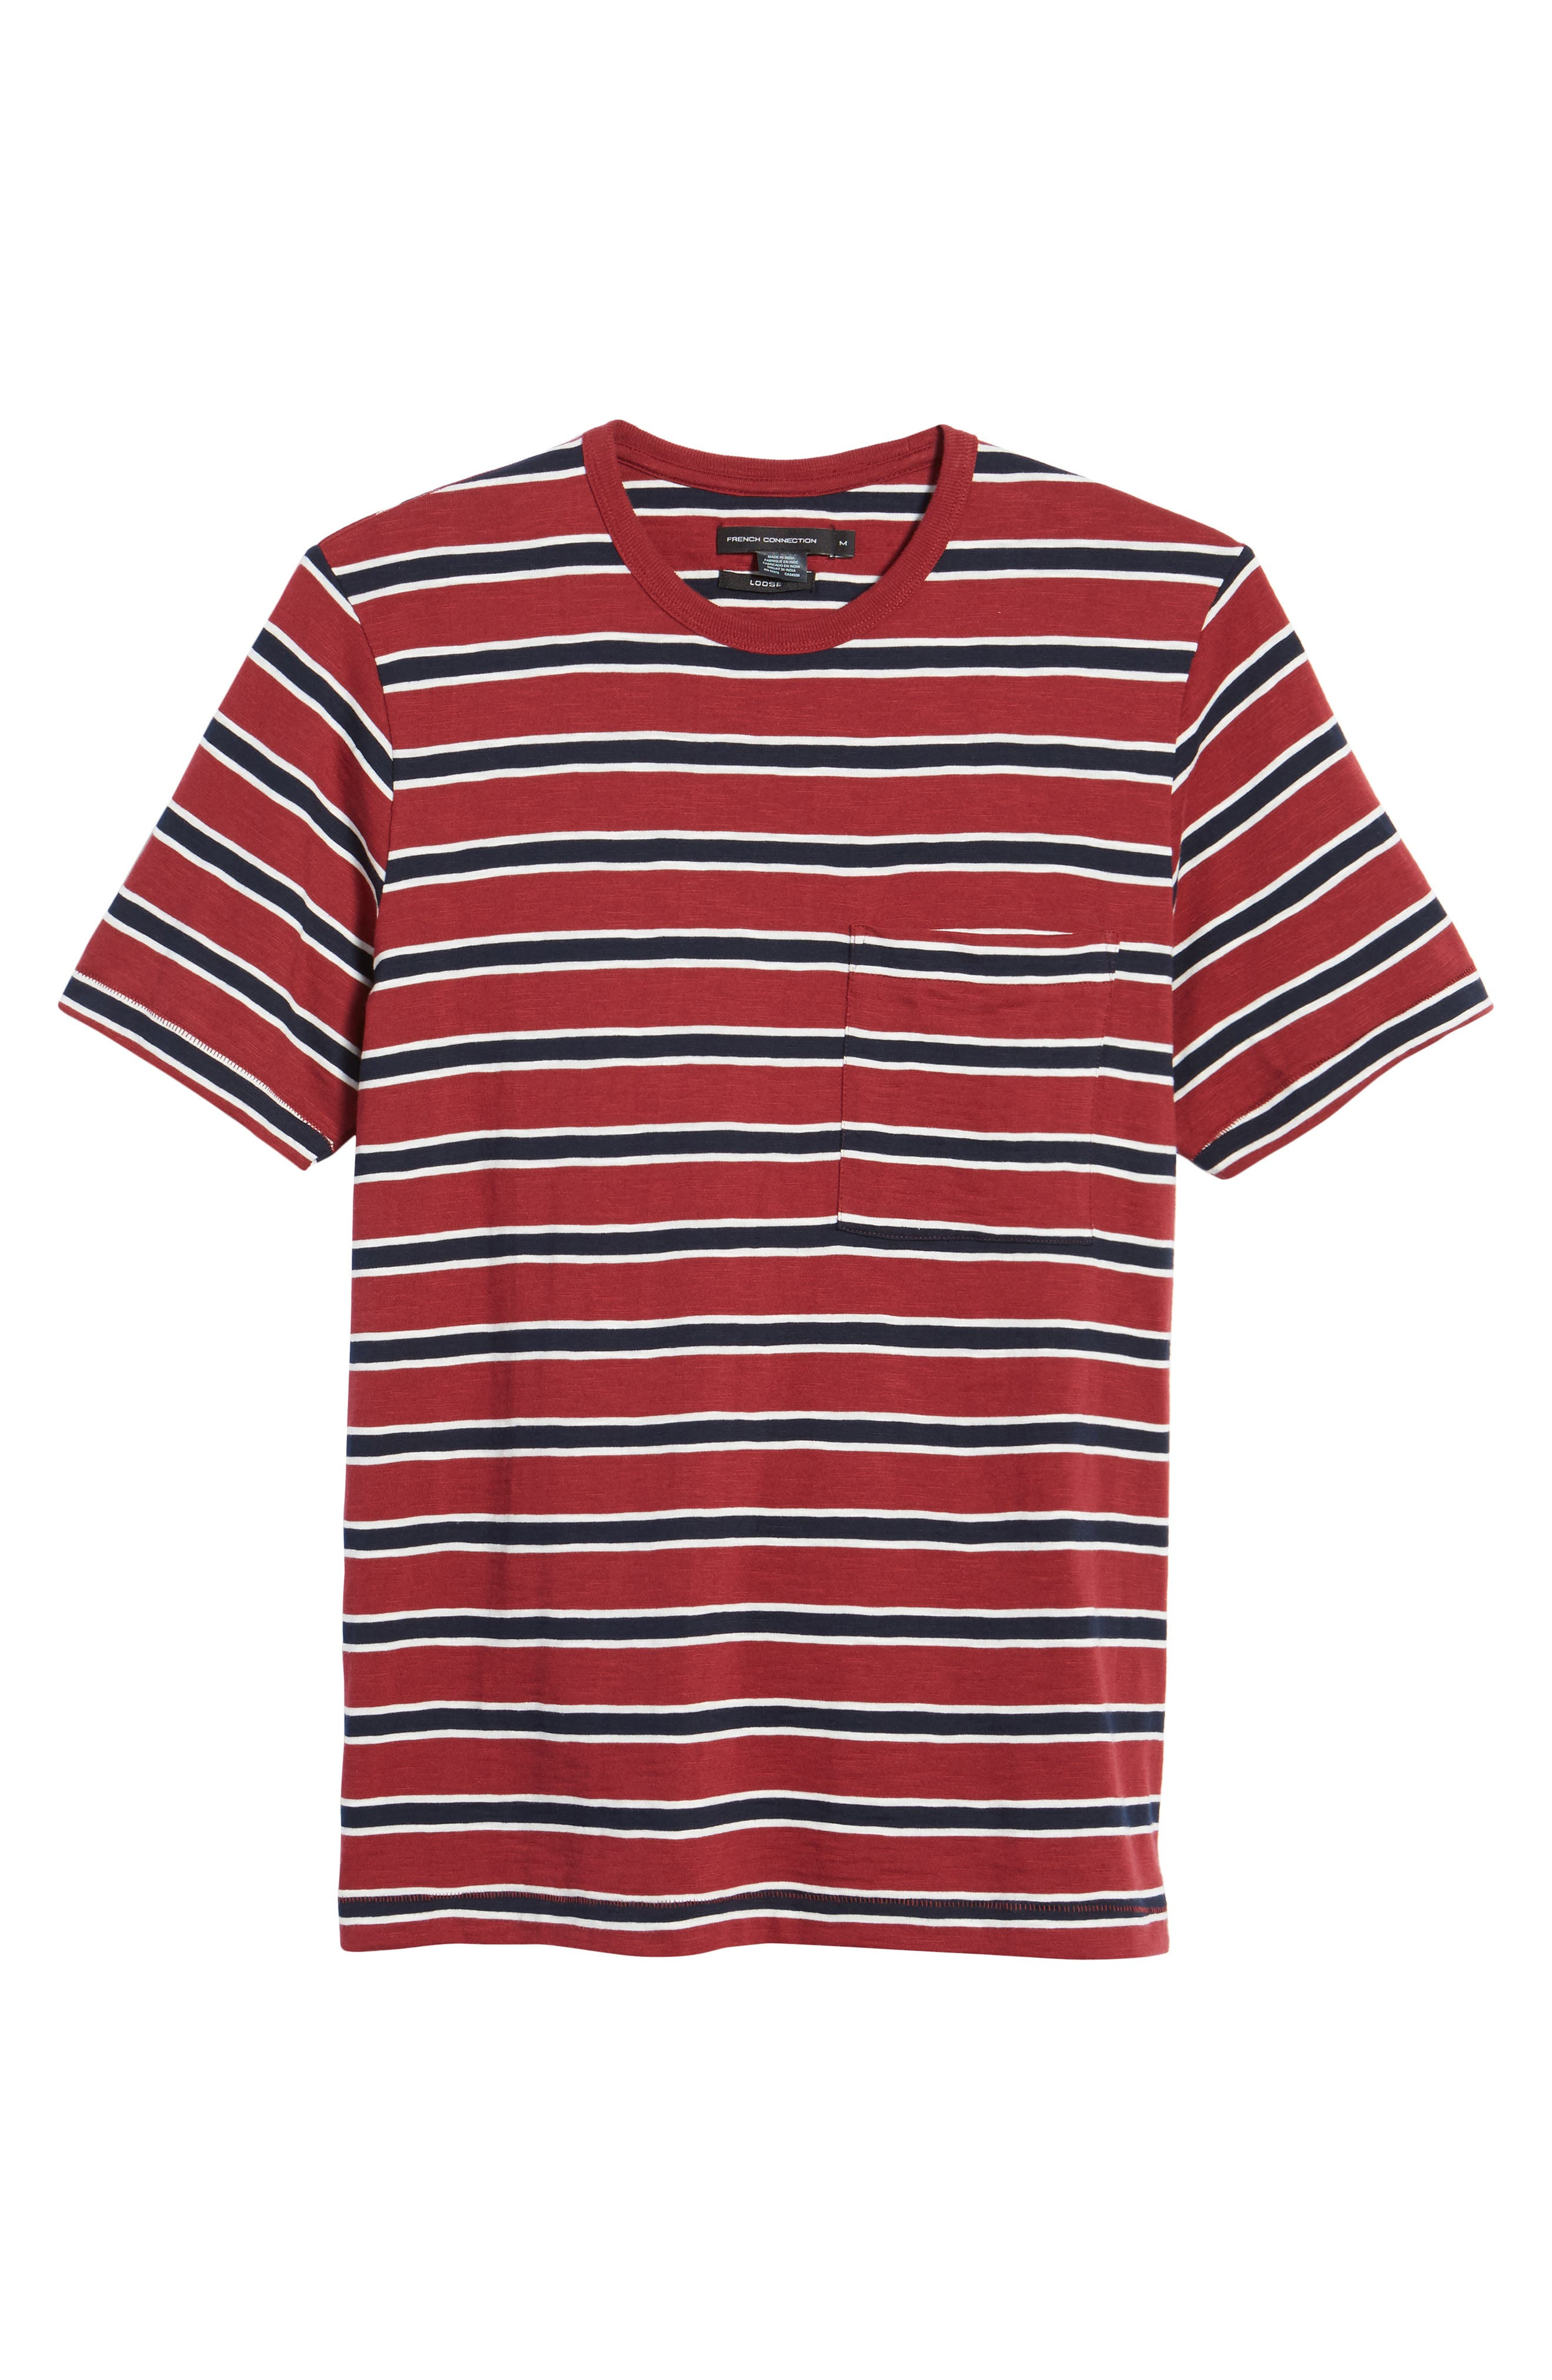 Old School Slim Fit Stripe T-Shirt,                             Alternate thumbnail 6, color,                             603